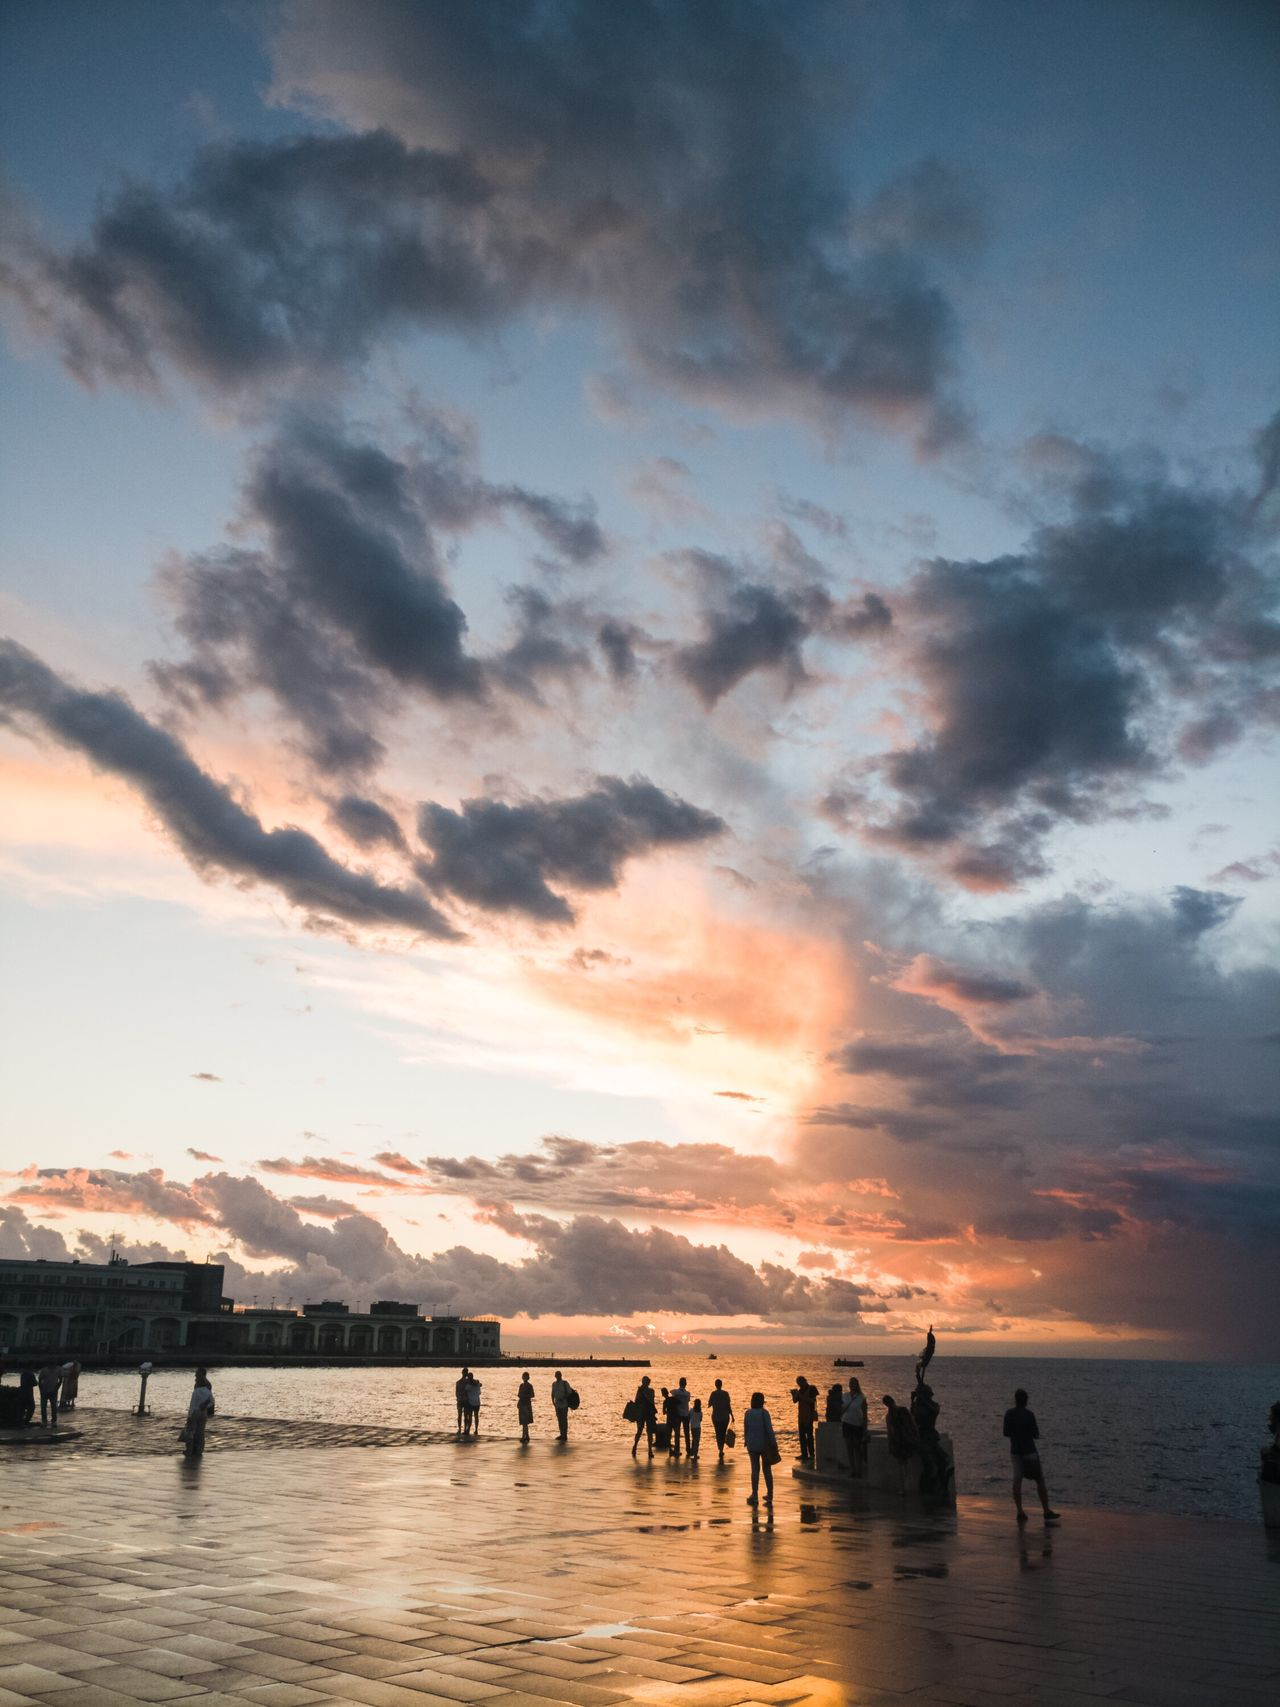 Water Sunset Sky Cloud Silhouette Large Group Of People Tranquil Scene Tranquility Vacations Enjoyment Person Outline Calm Group Of People Reflection Enjoying Scenics Cloud - Sky Ocean Nature EyeEm Best Shots EyeEm Gallery EyeEmBestPics Eye4photography  Sunset_collection